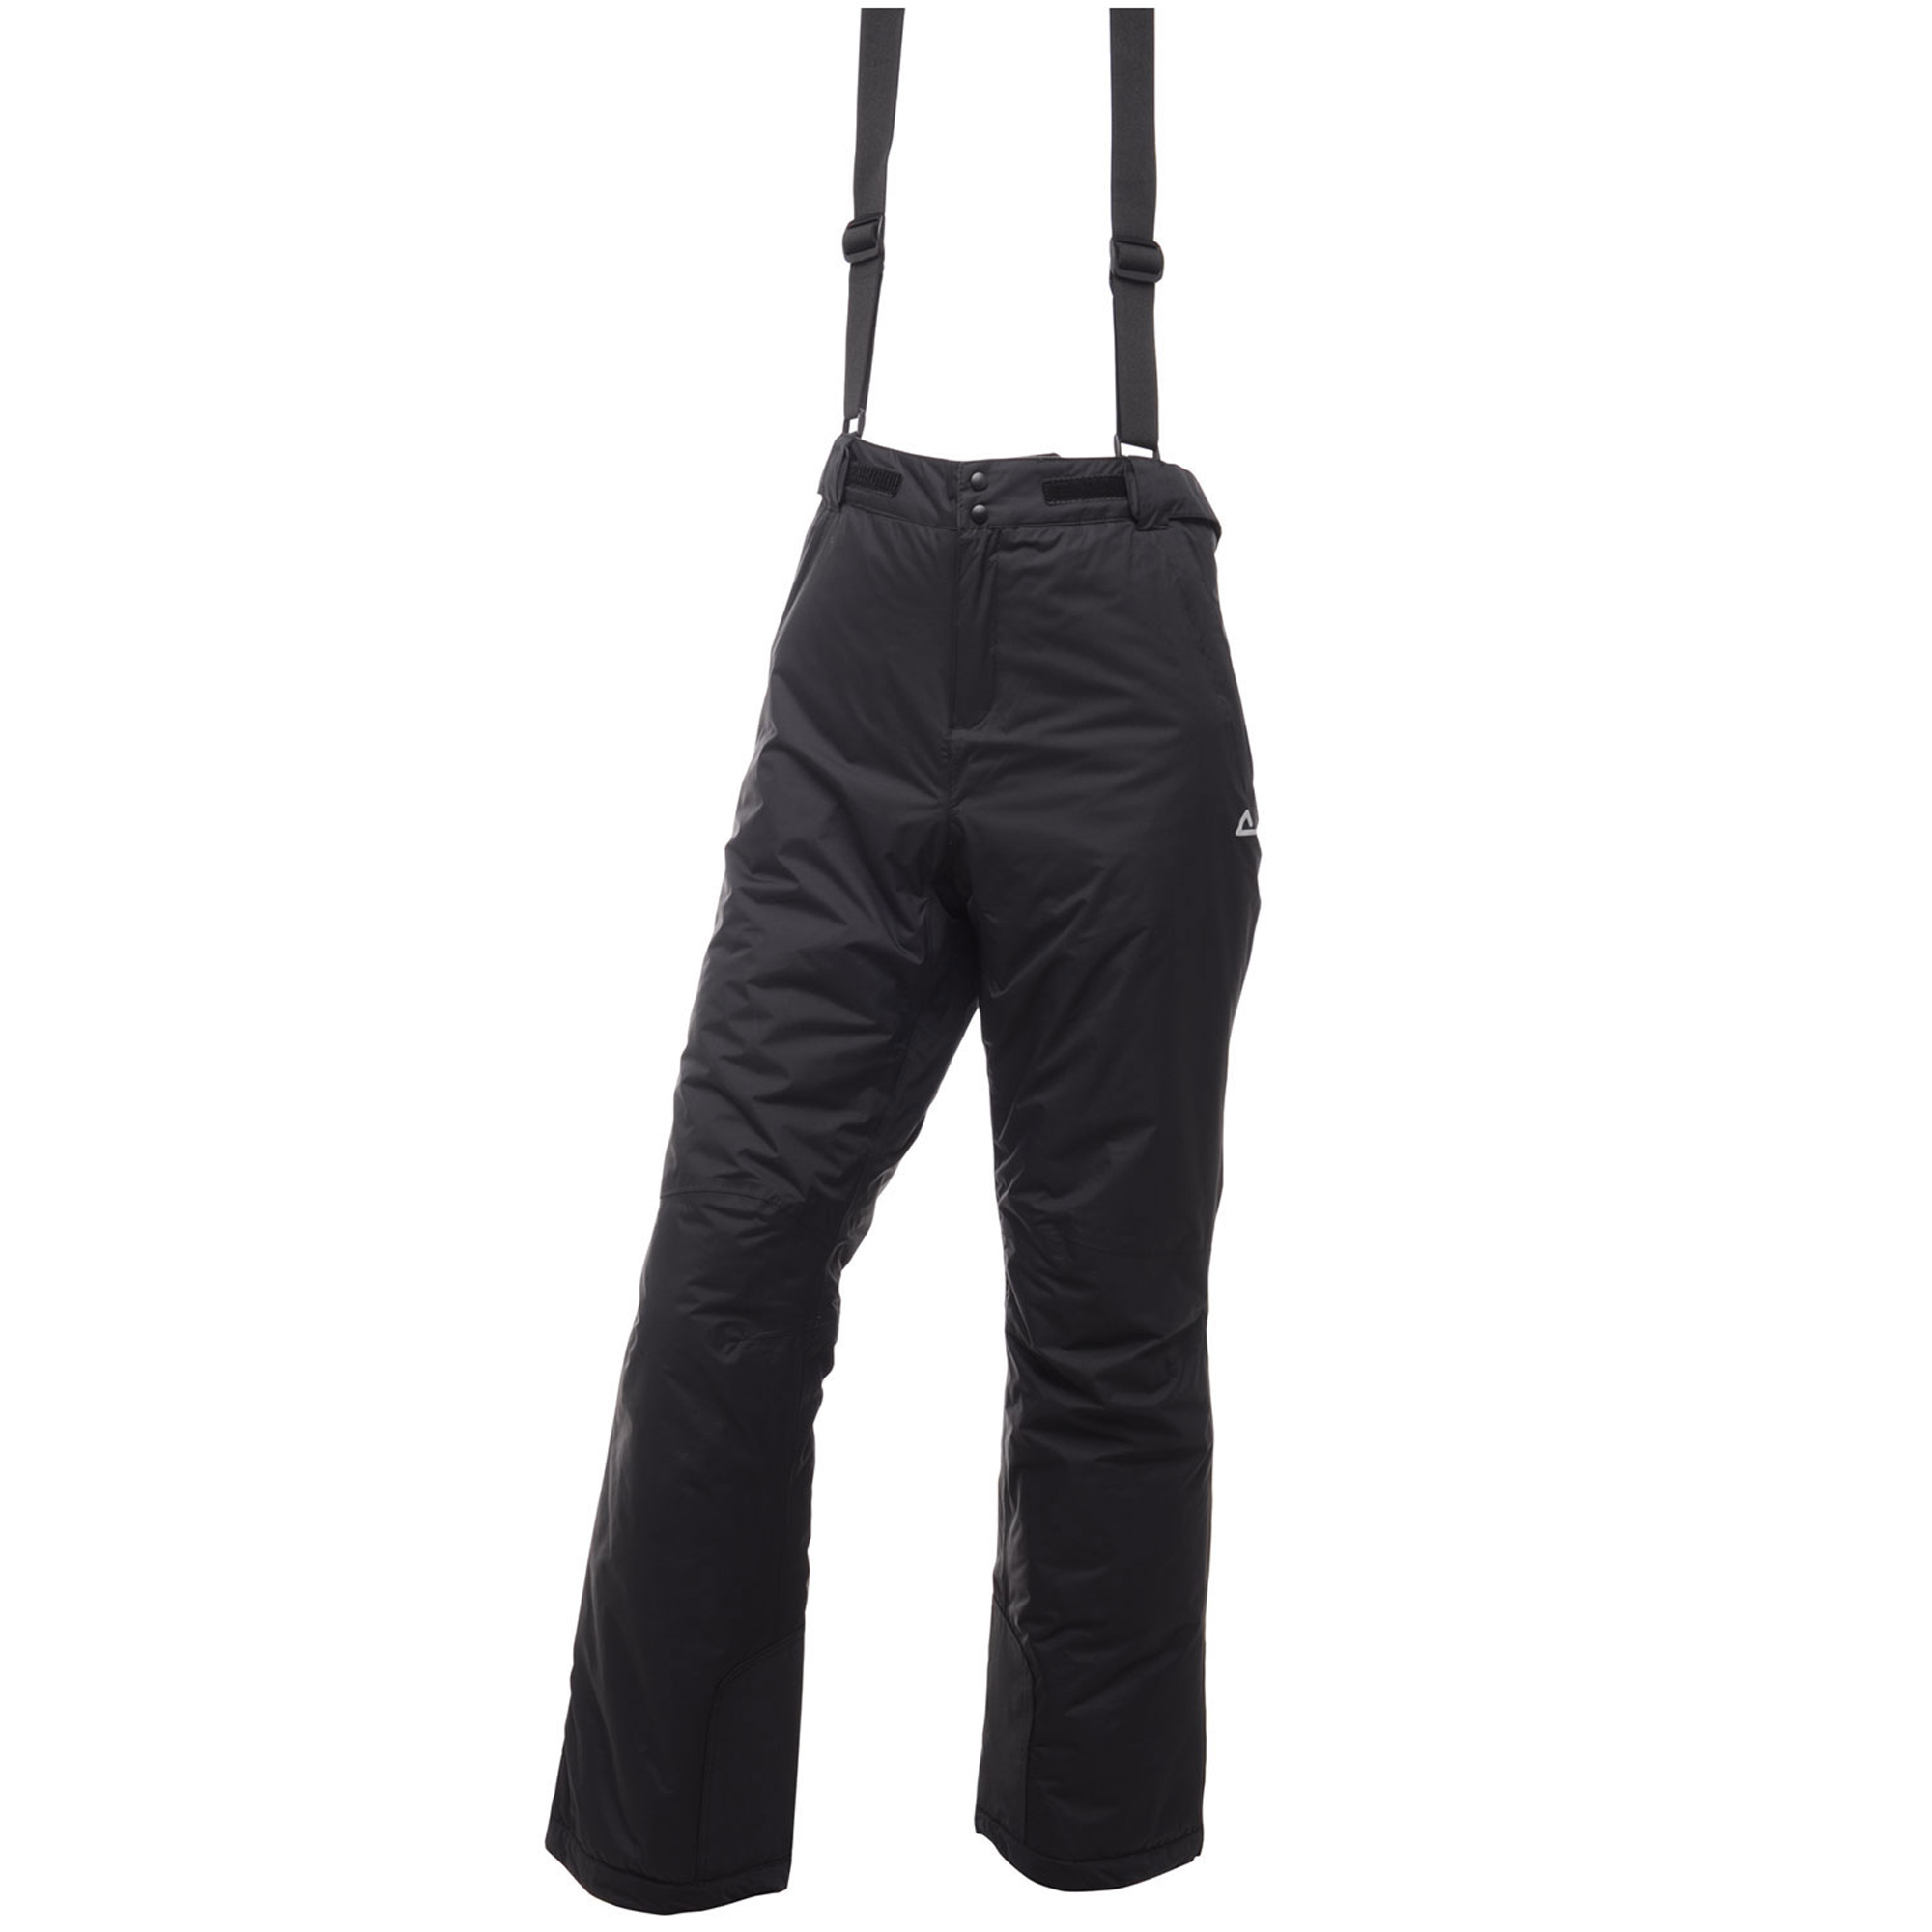 Dare2b Dive Down Men's Ski Pants - Black